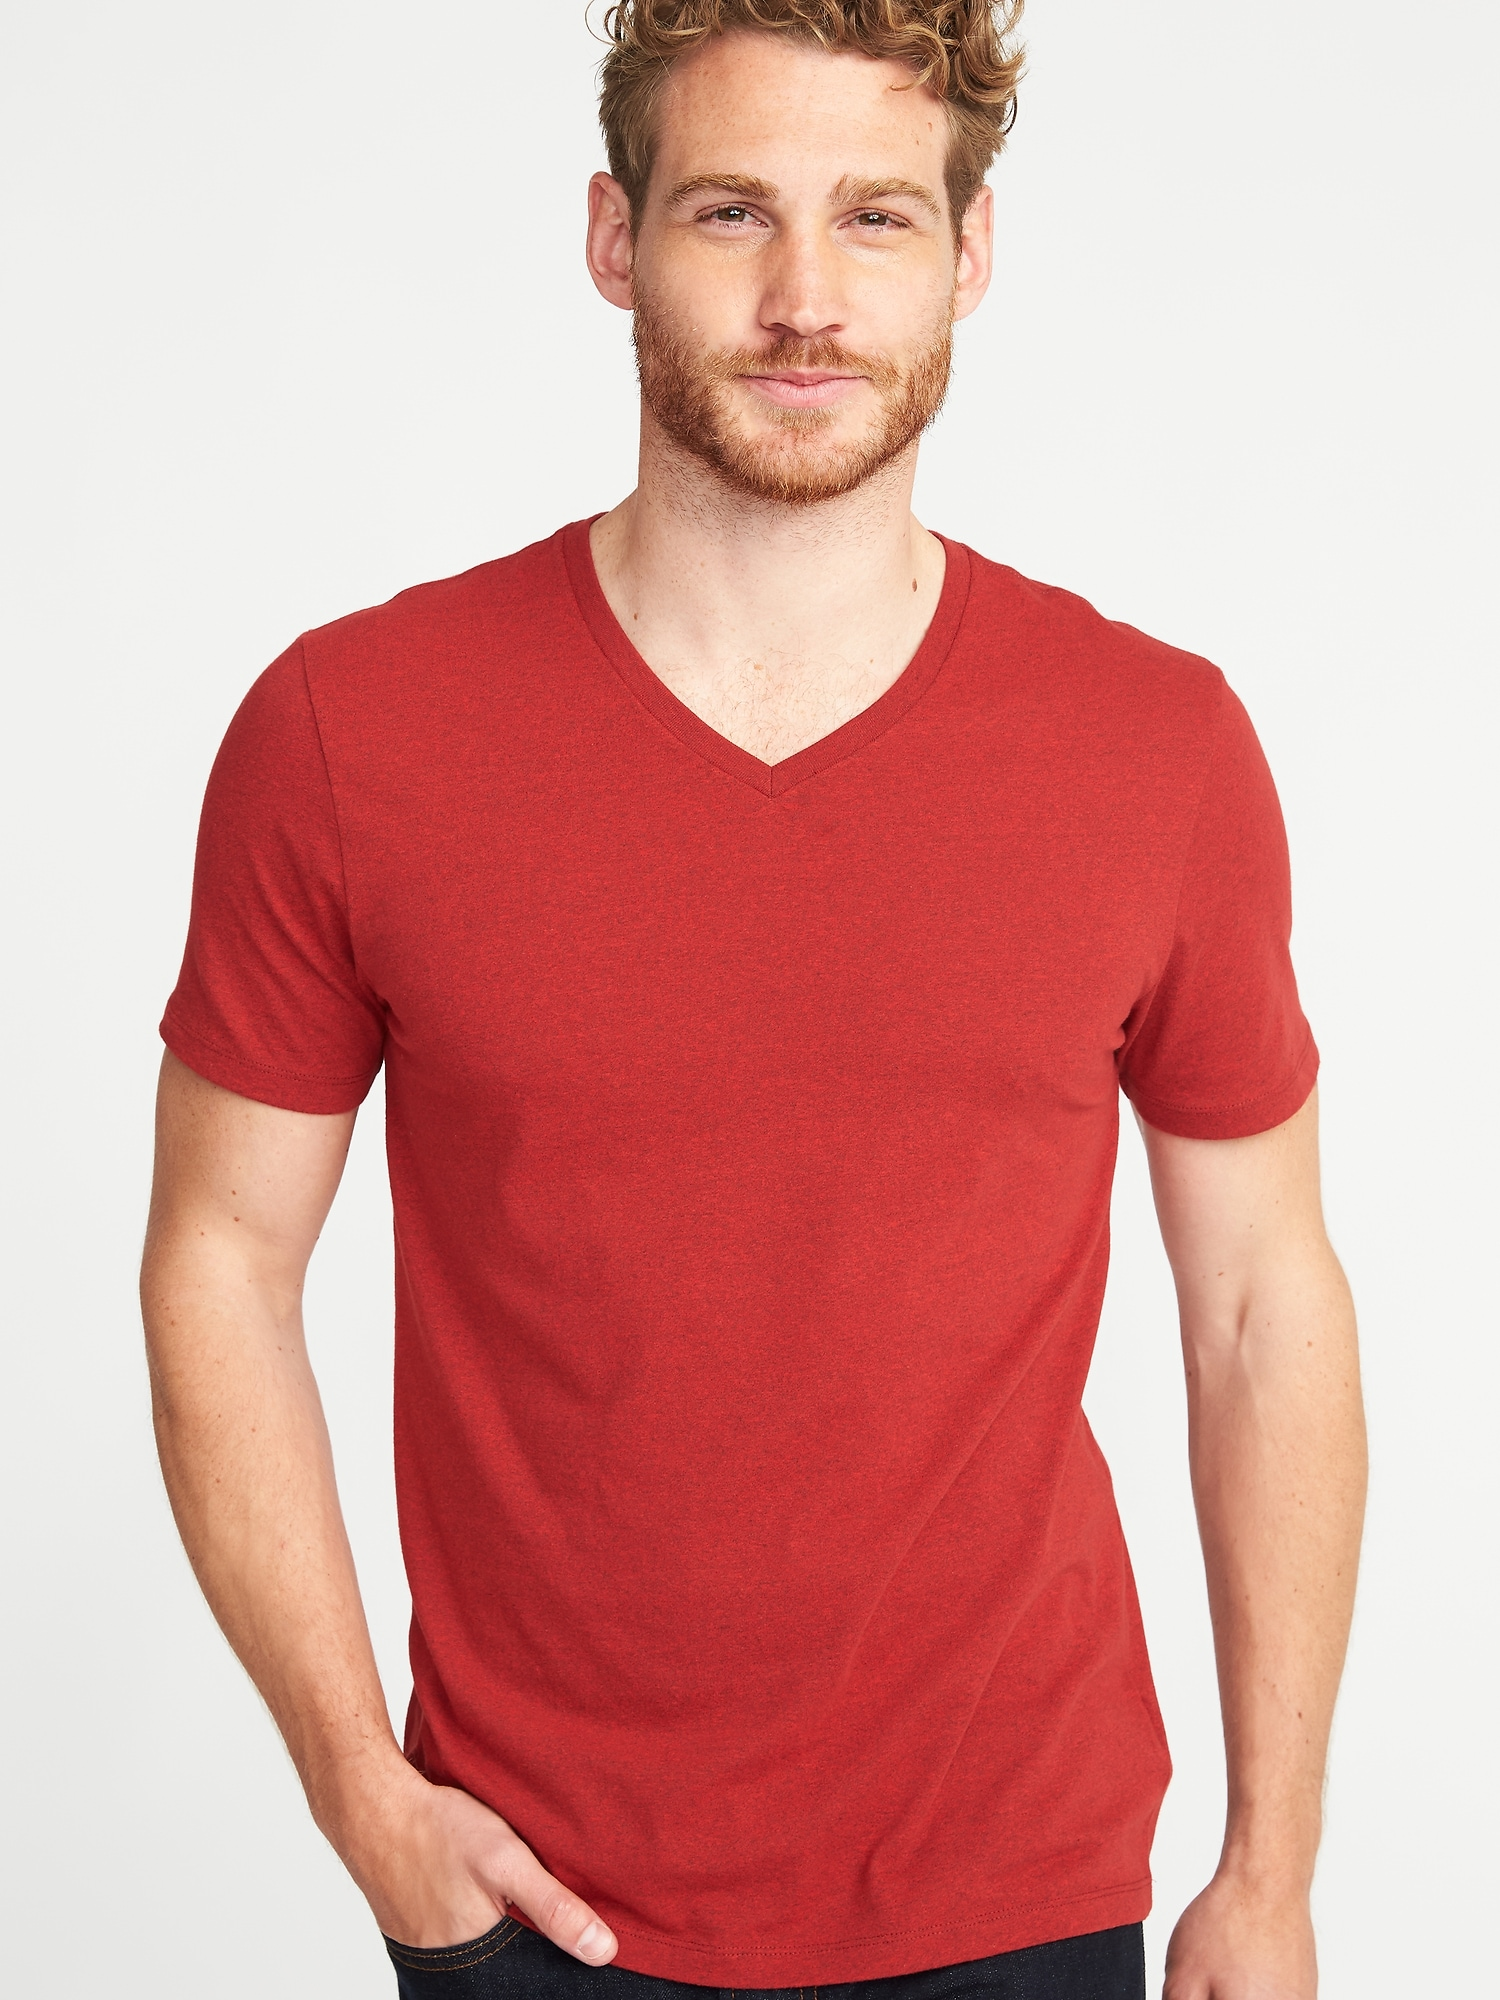 Soft Washed Slub Knit V Neck Tee For Men Old Navy